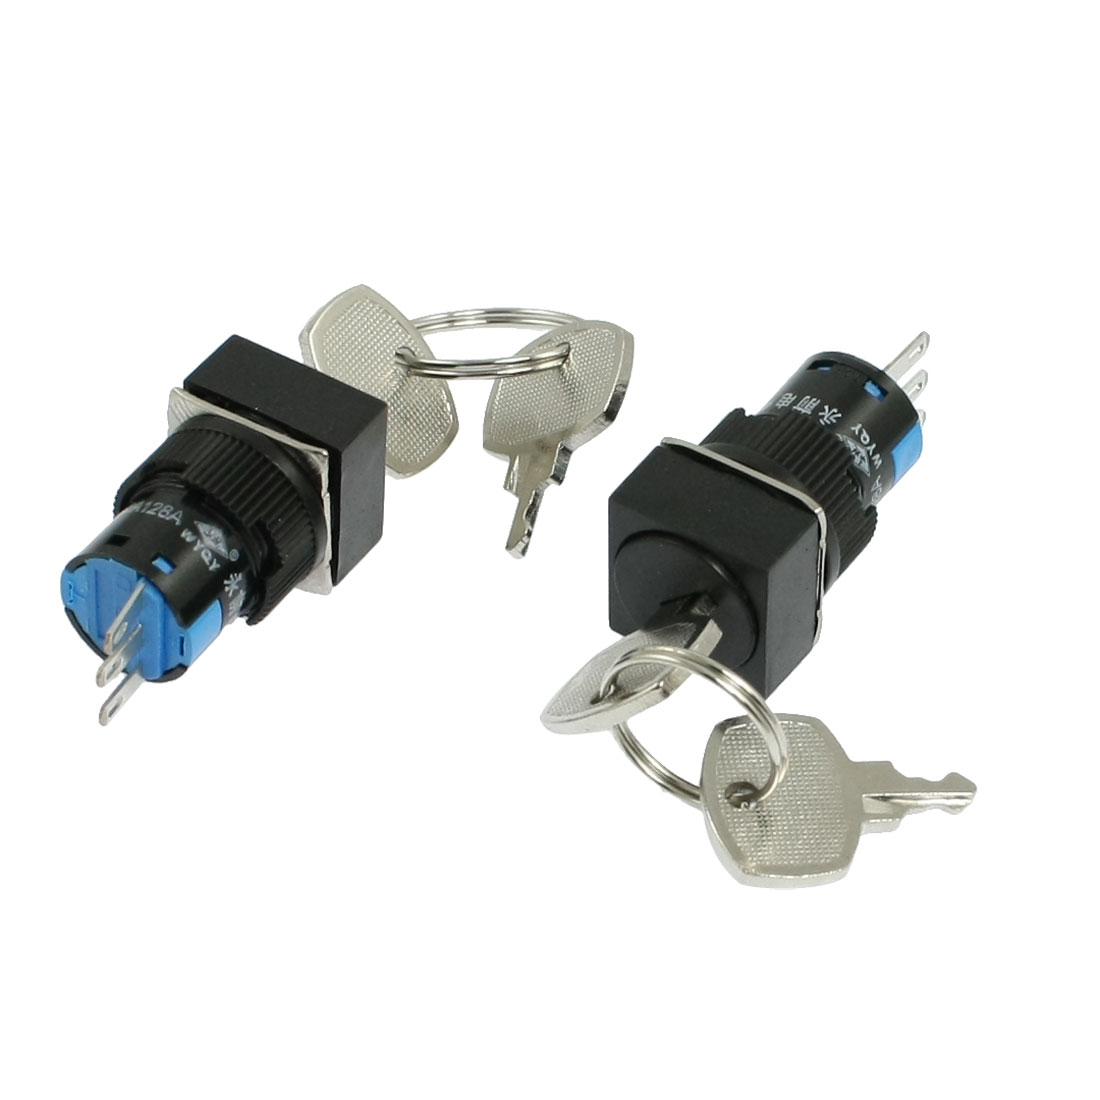 2 Pcs AC 250V Square 2 Position 1NO 1NC Keylock Push Button Switch + 2 Keys